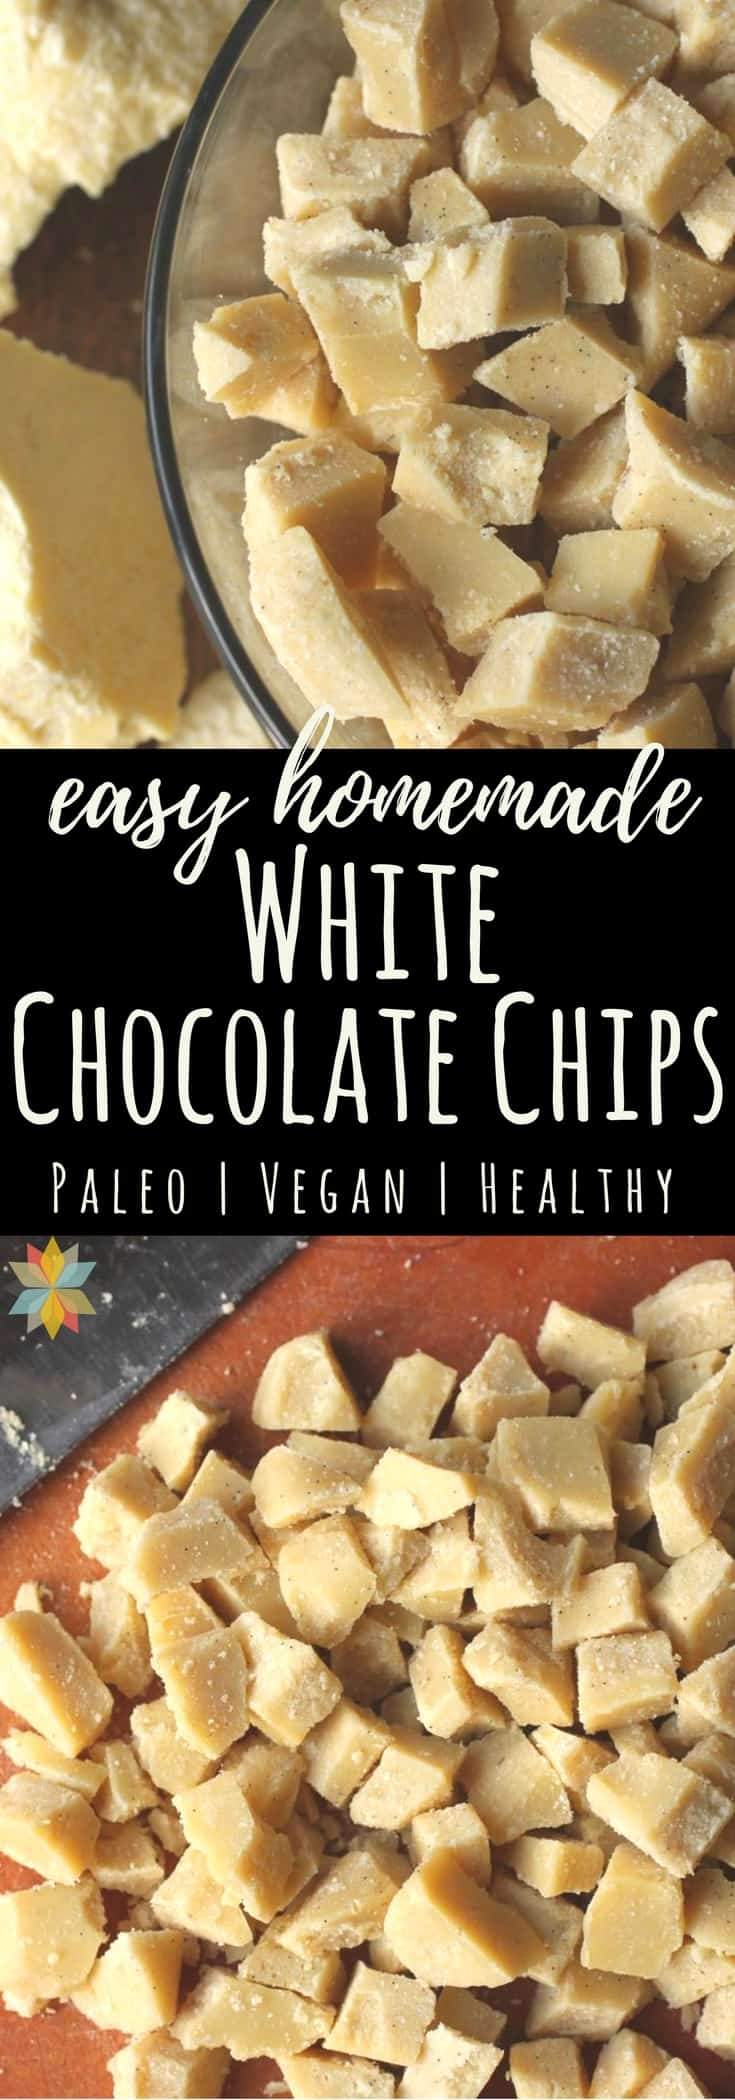 White Chocolate Chips (dairy, soy, and sugar free)